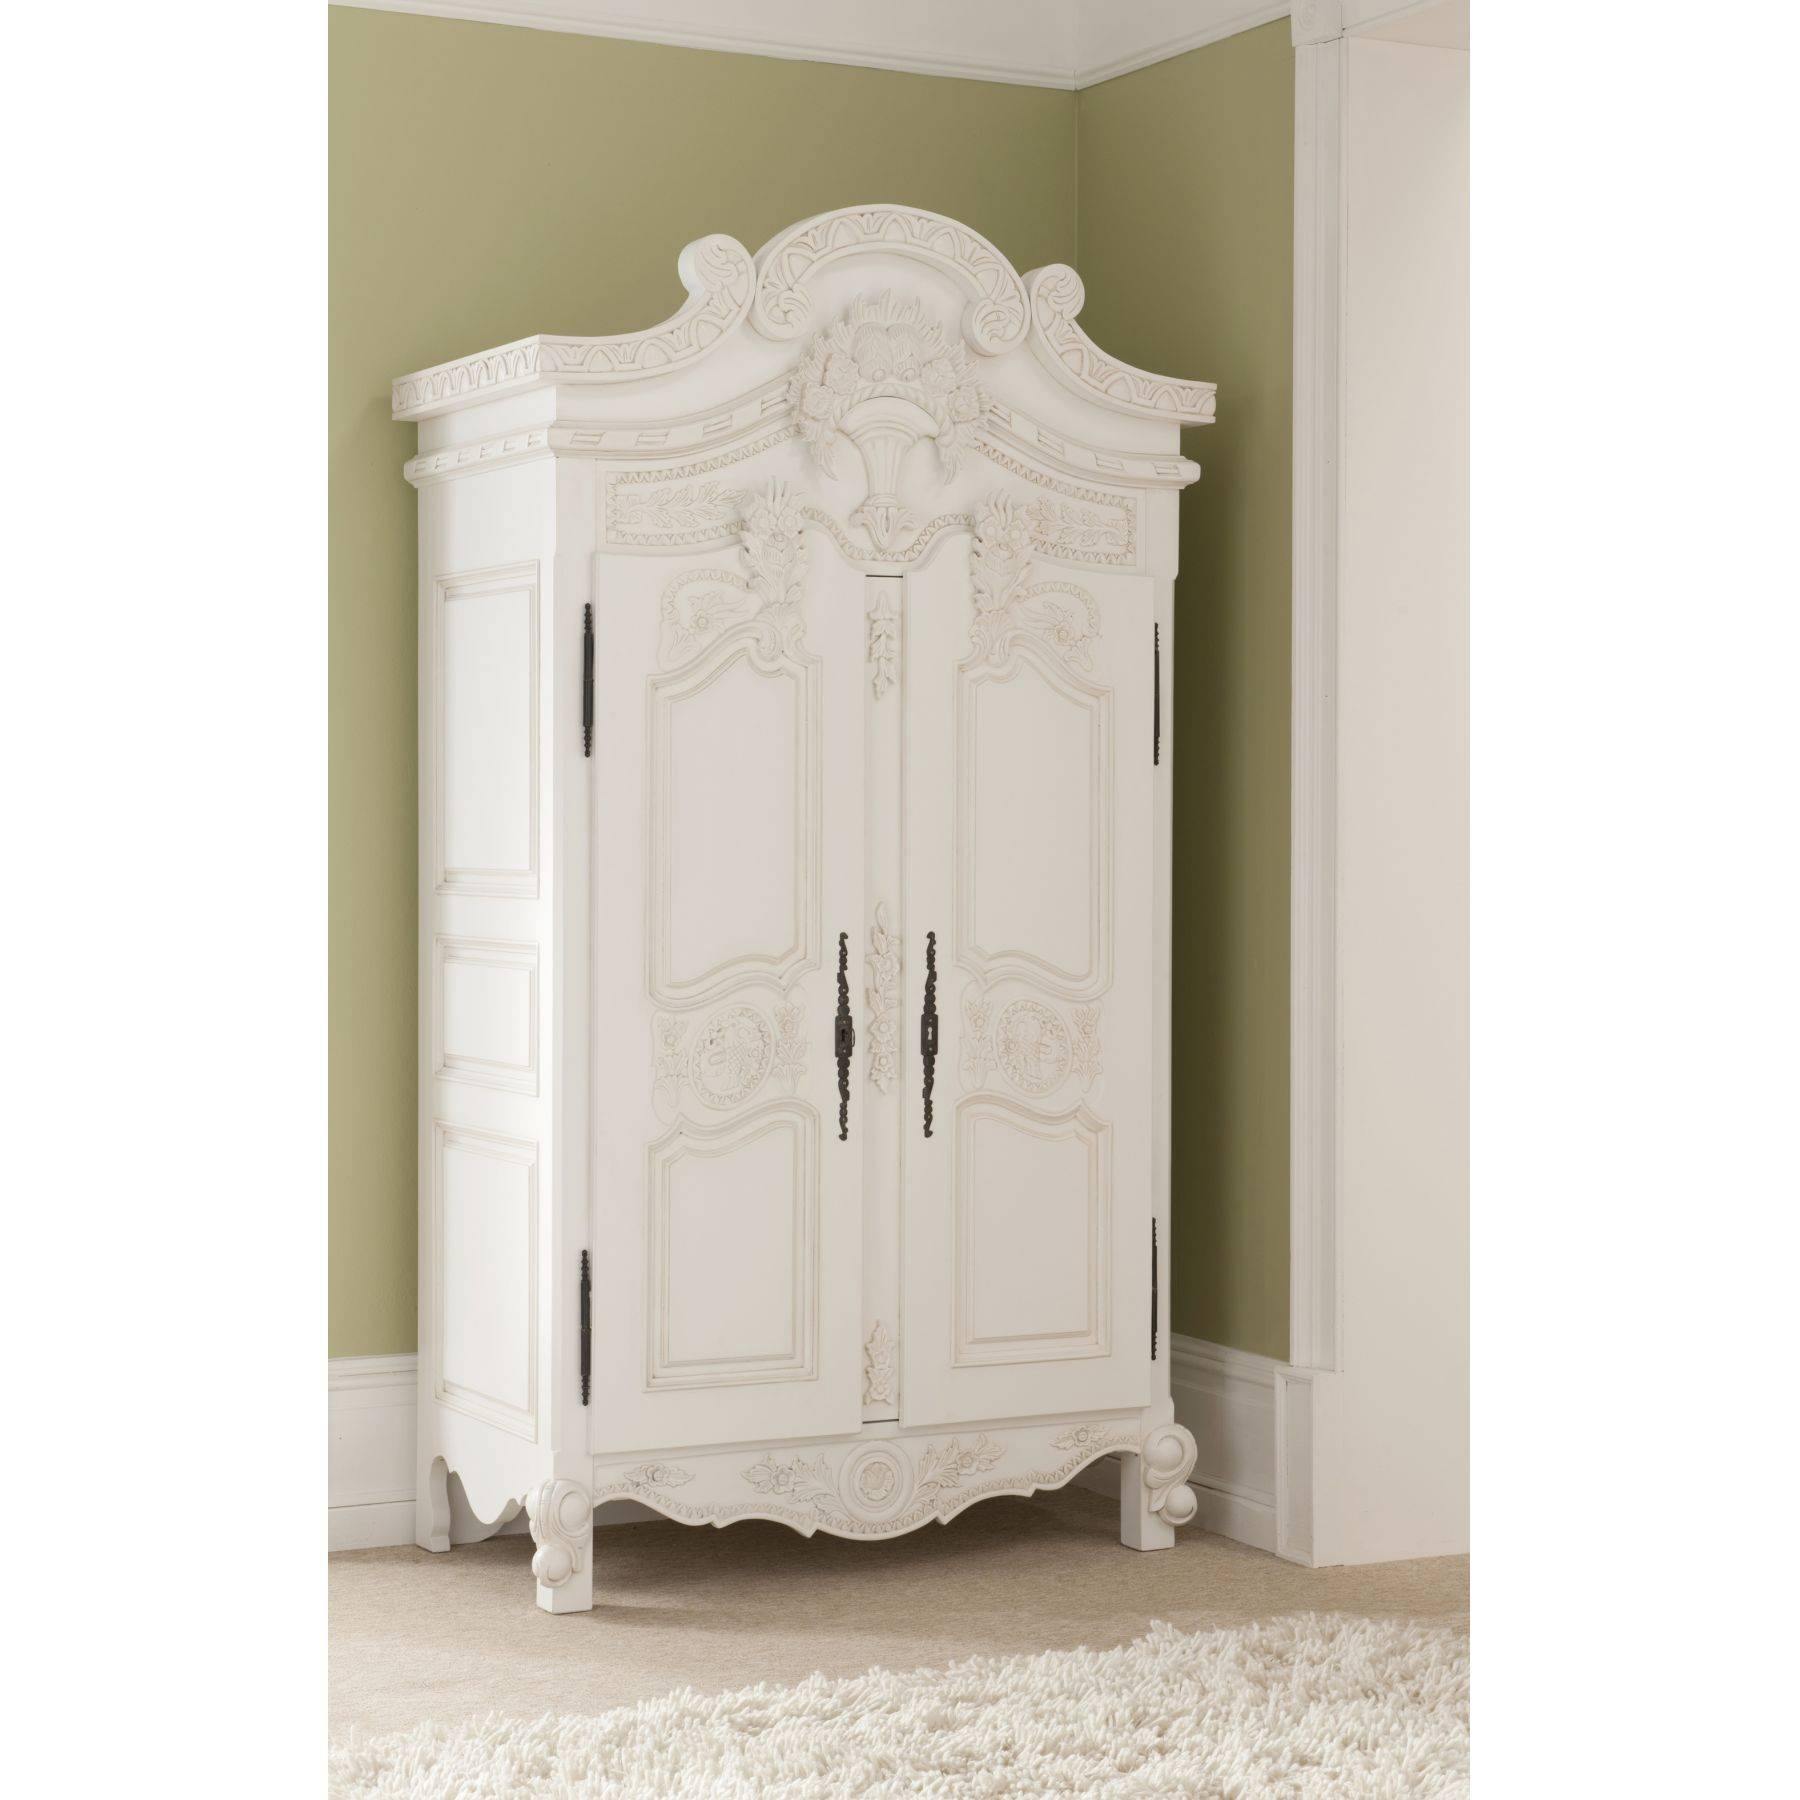 Rococo Antique French Wardrobe A Stunning Addition To Our Shabby within French White Wardrobes (Image 13 of 15)